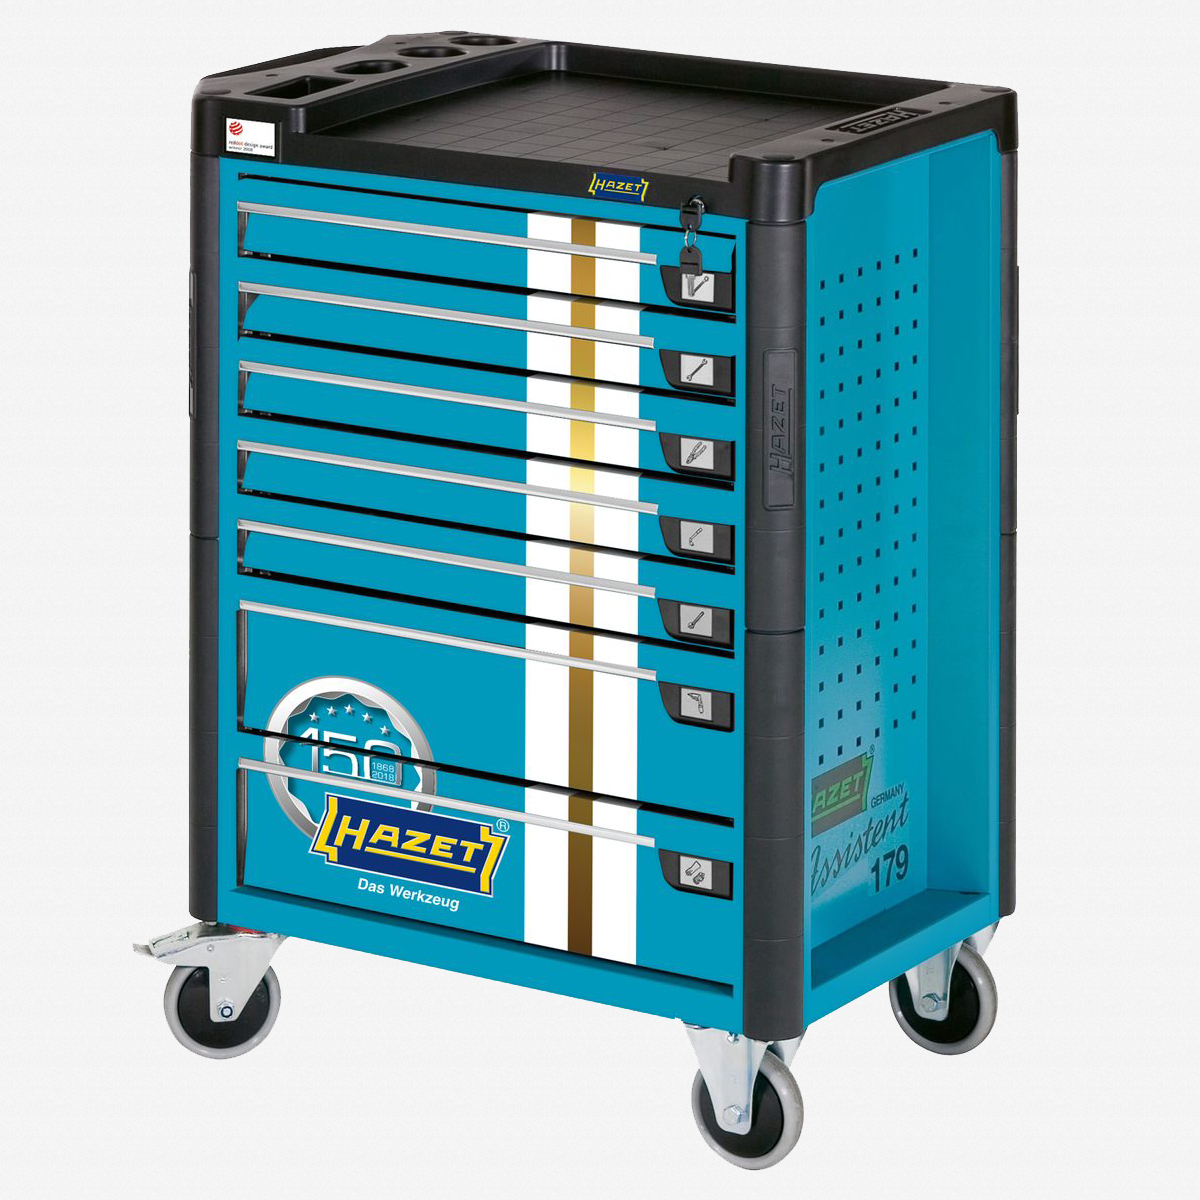 Hazet 179-7J 150th Anniversary Limited Edition Tool Trolley - Blue - KC Tool